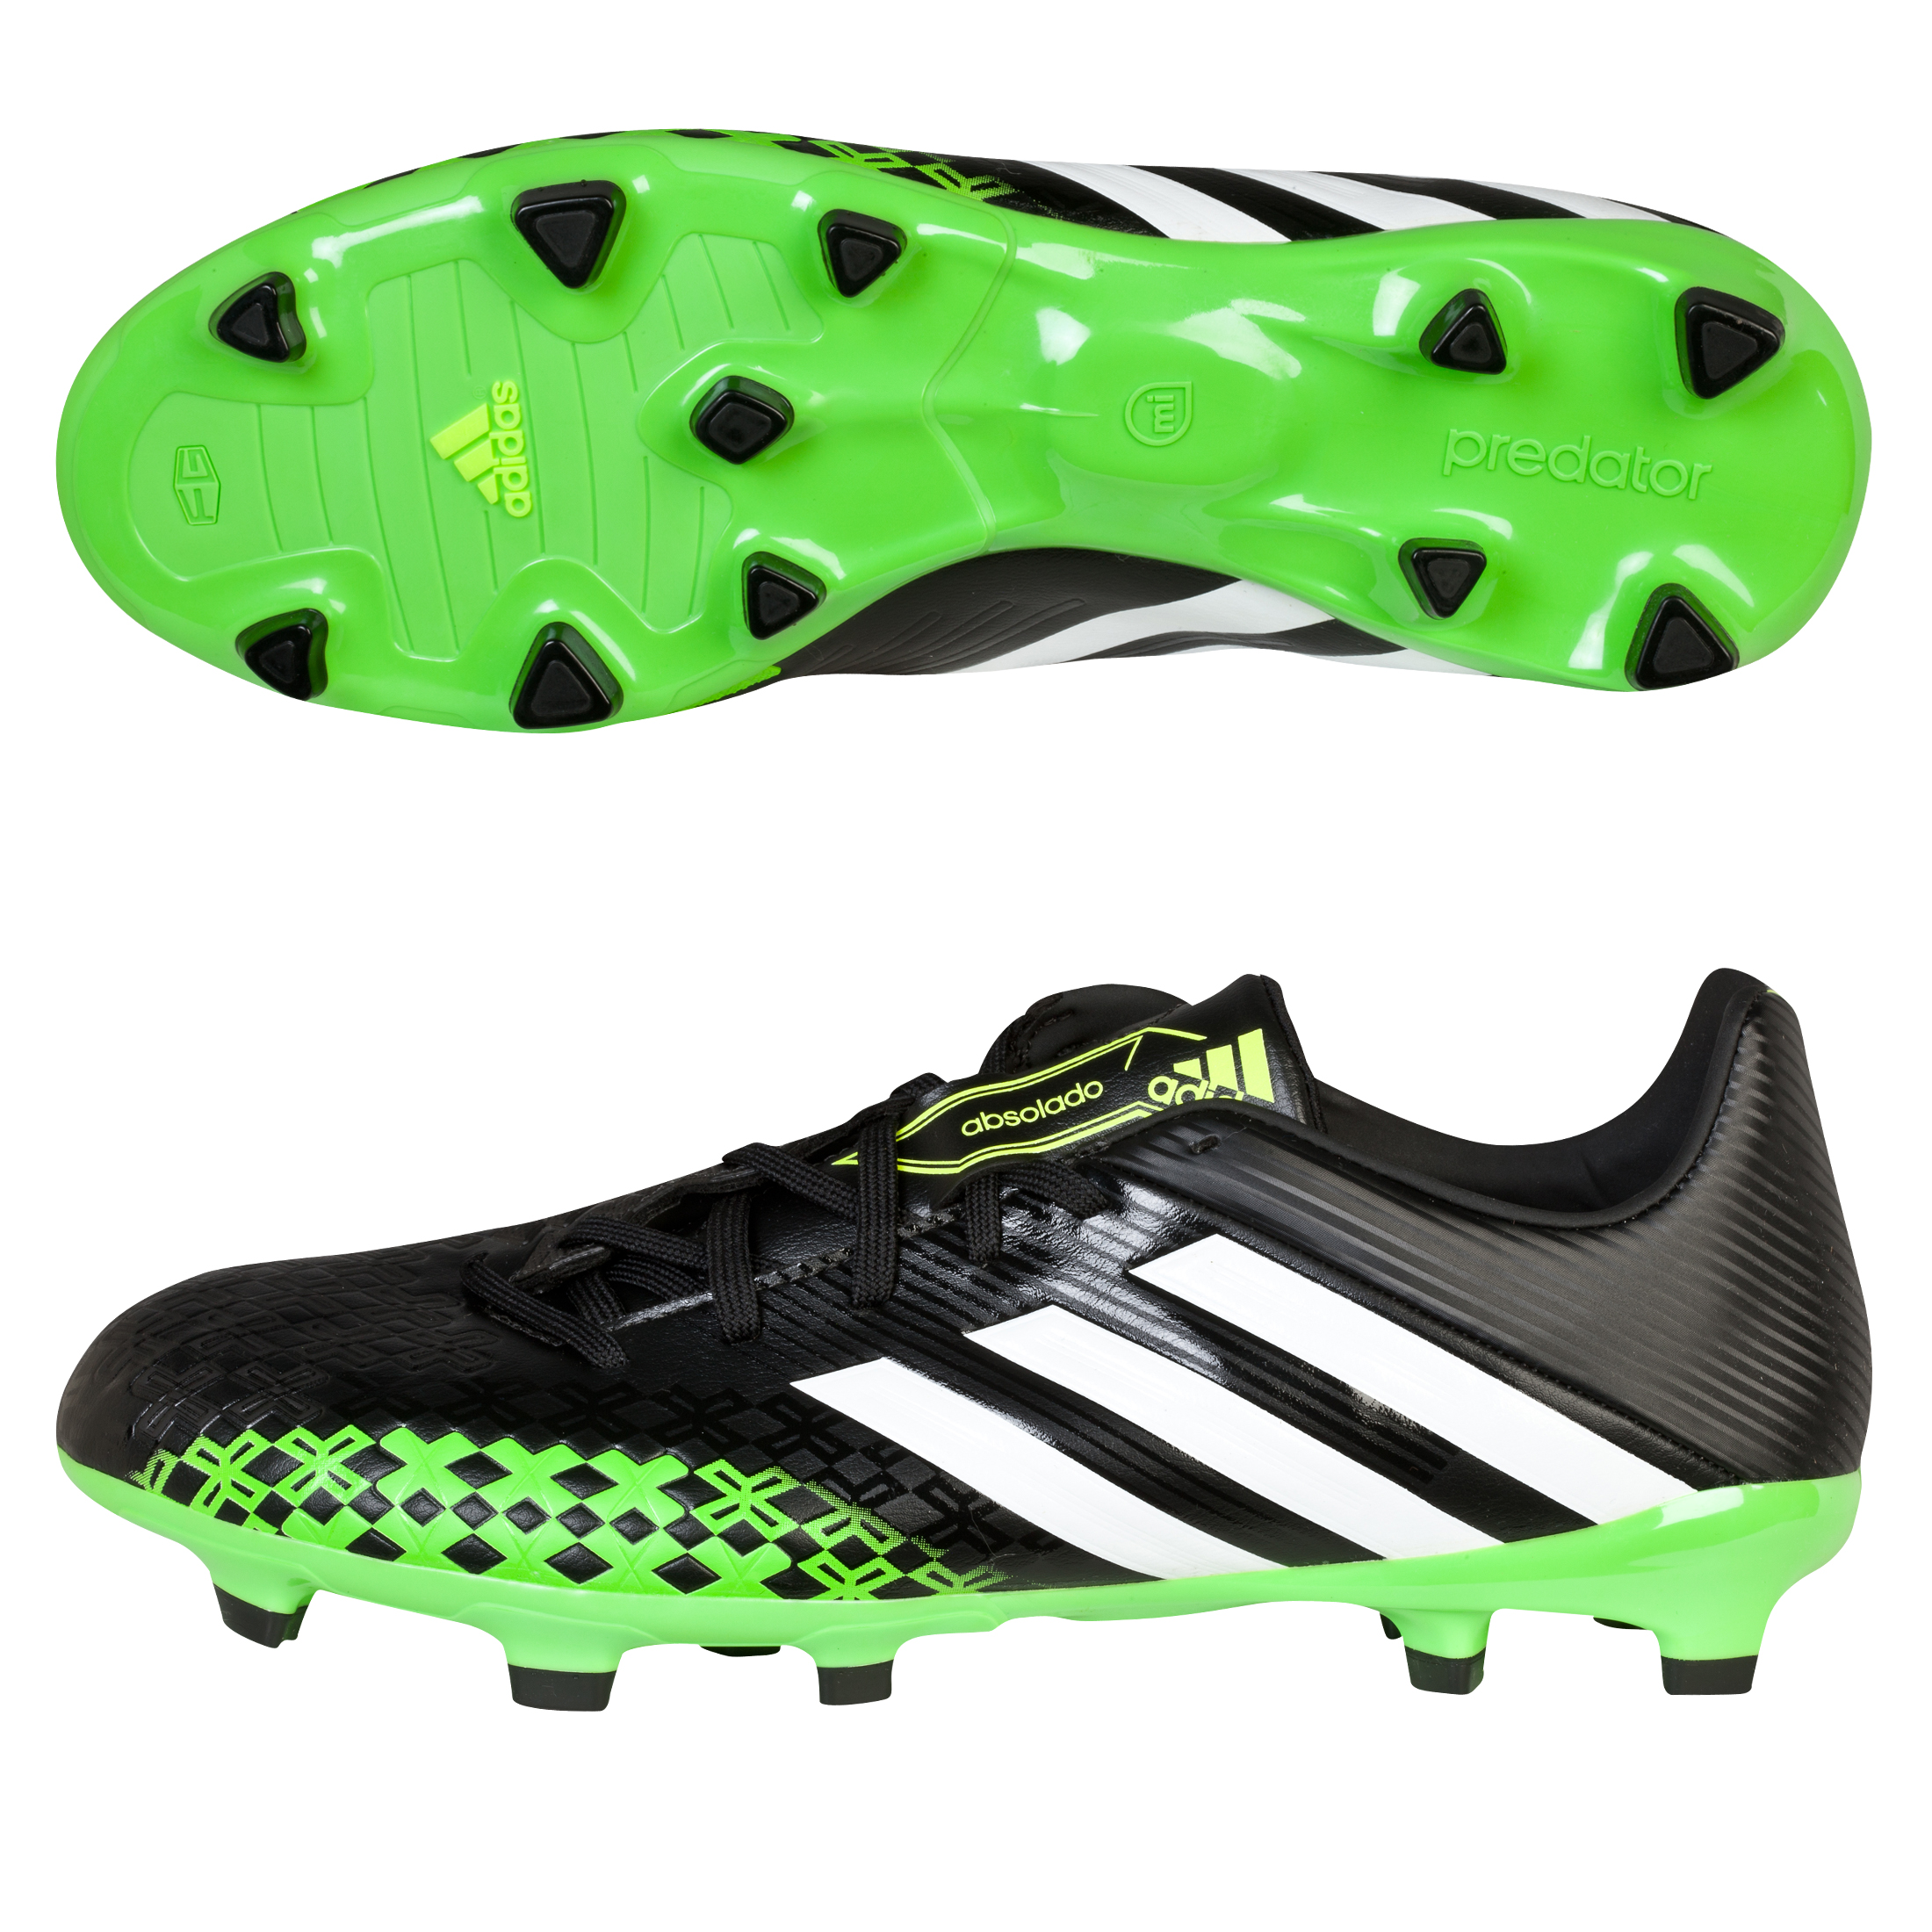 Adidas Predator Absolado LZ TRX Firm Ground Football Boots Black